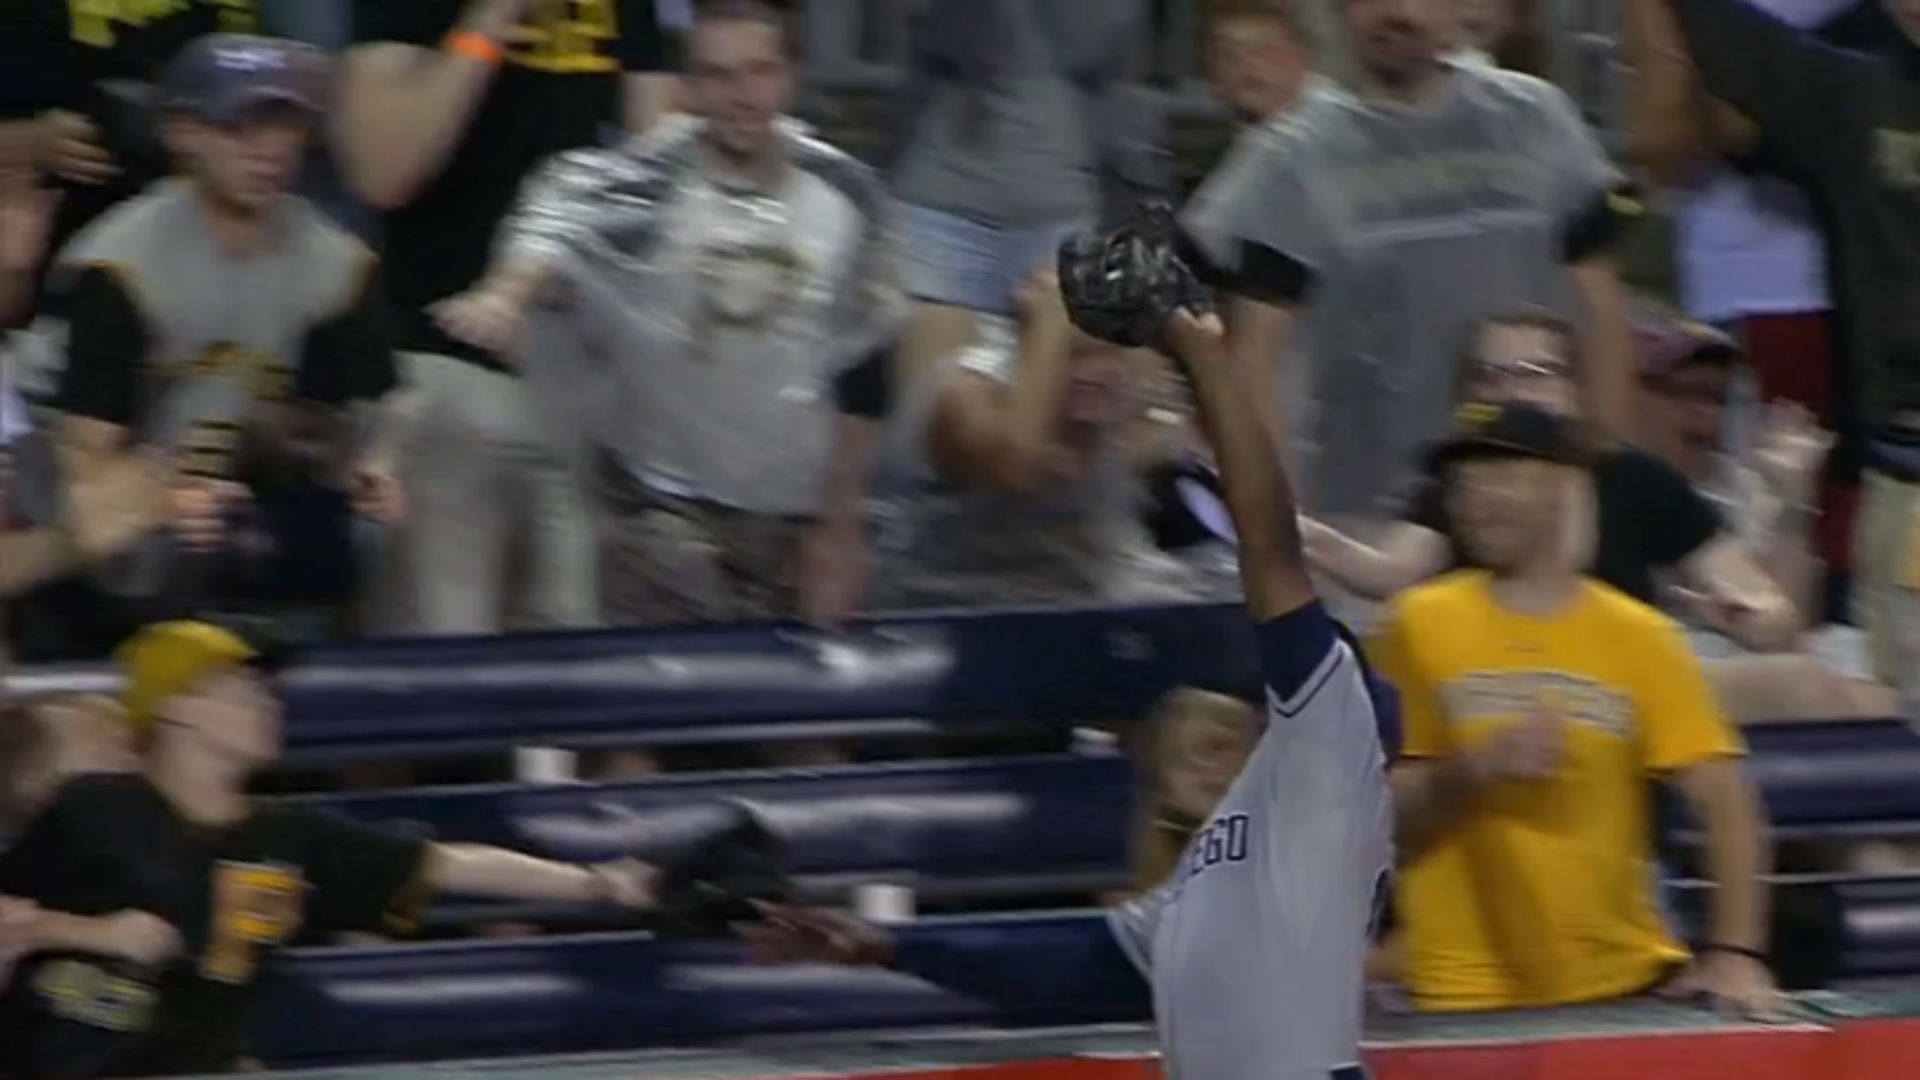 Justin Upton reaches into second row to rob Andrew McCutchen of home run